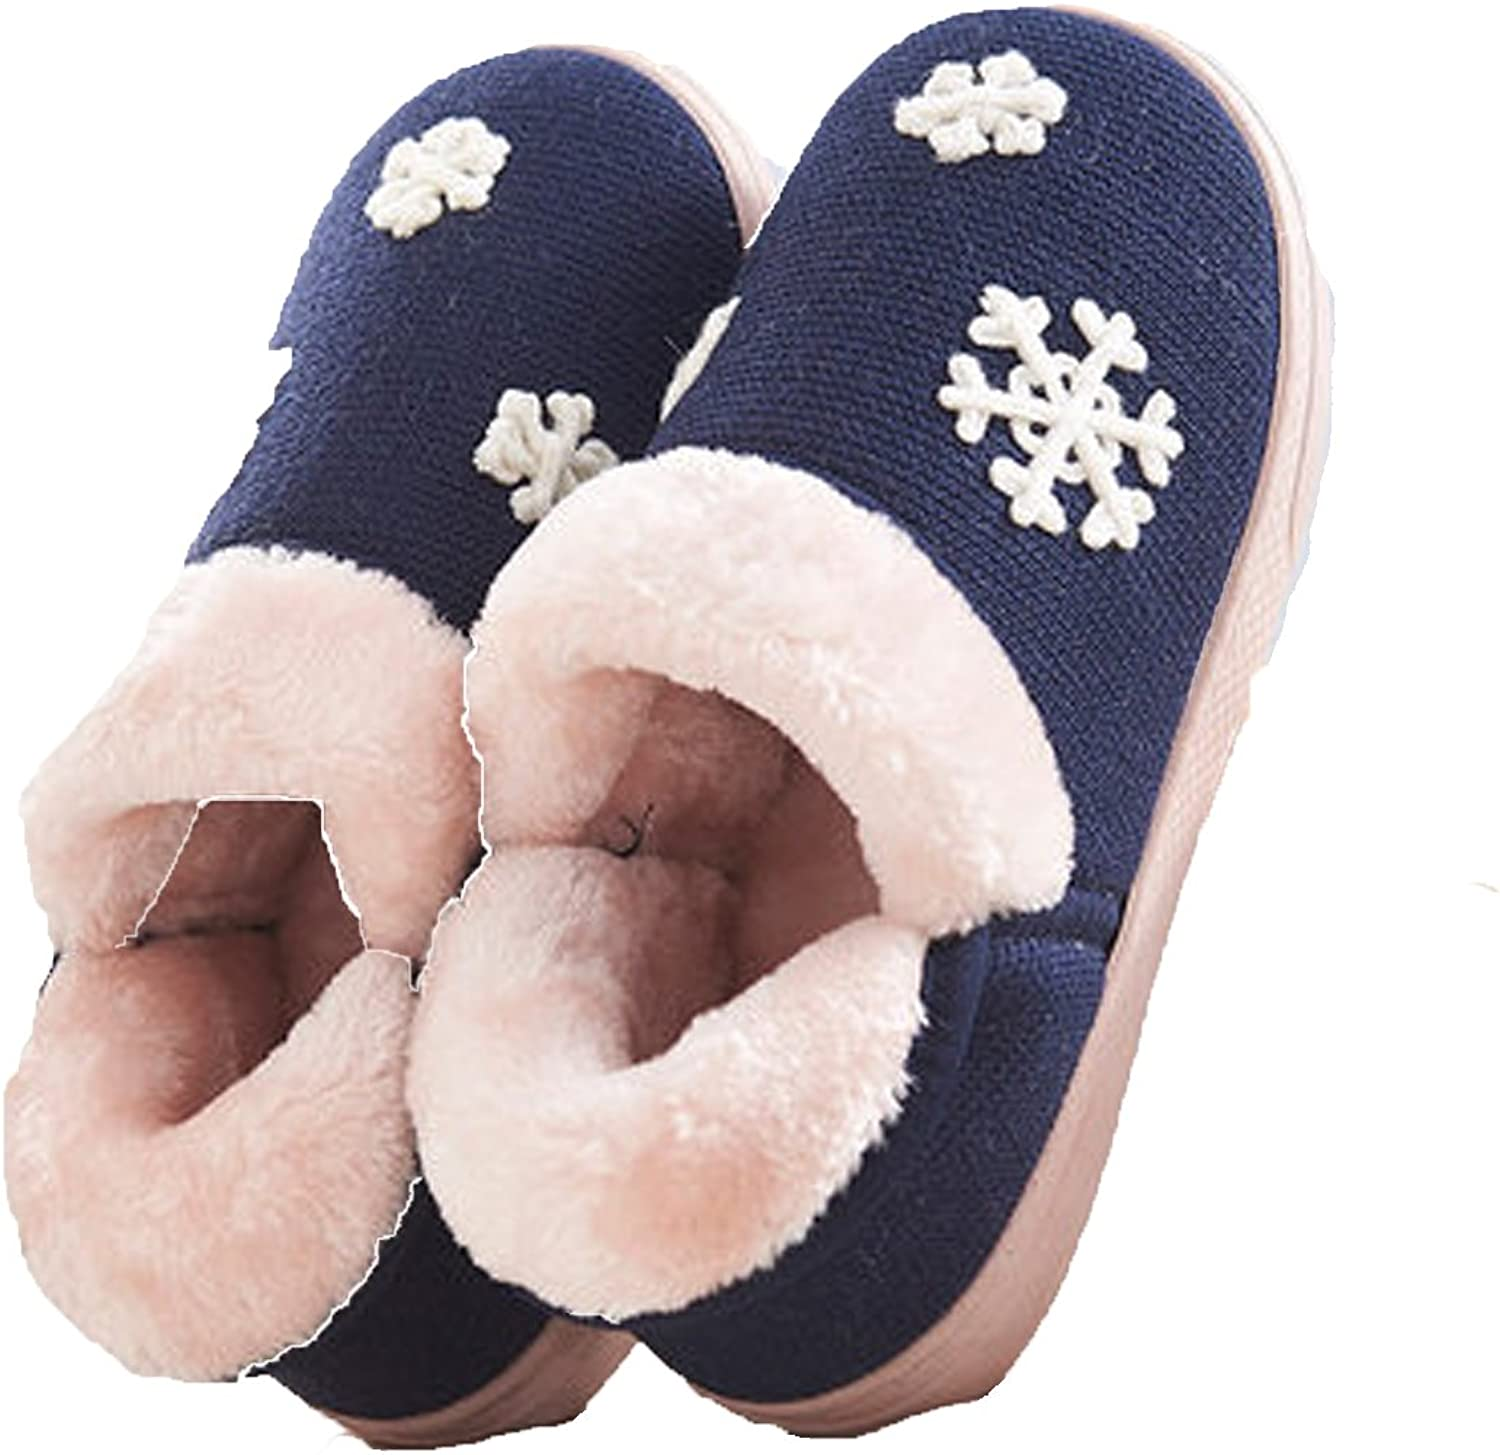 MENG SHENG Winter Cotton Non-Slip Mao Mao shoes Cute Indoor Home